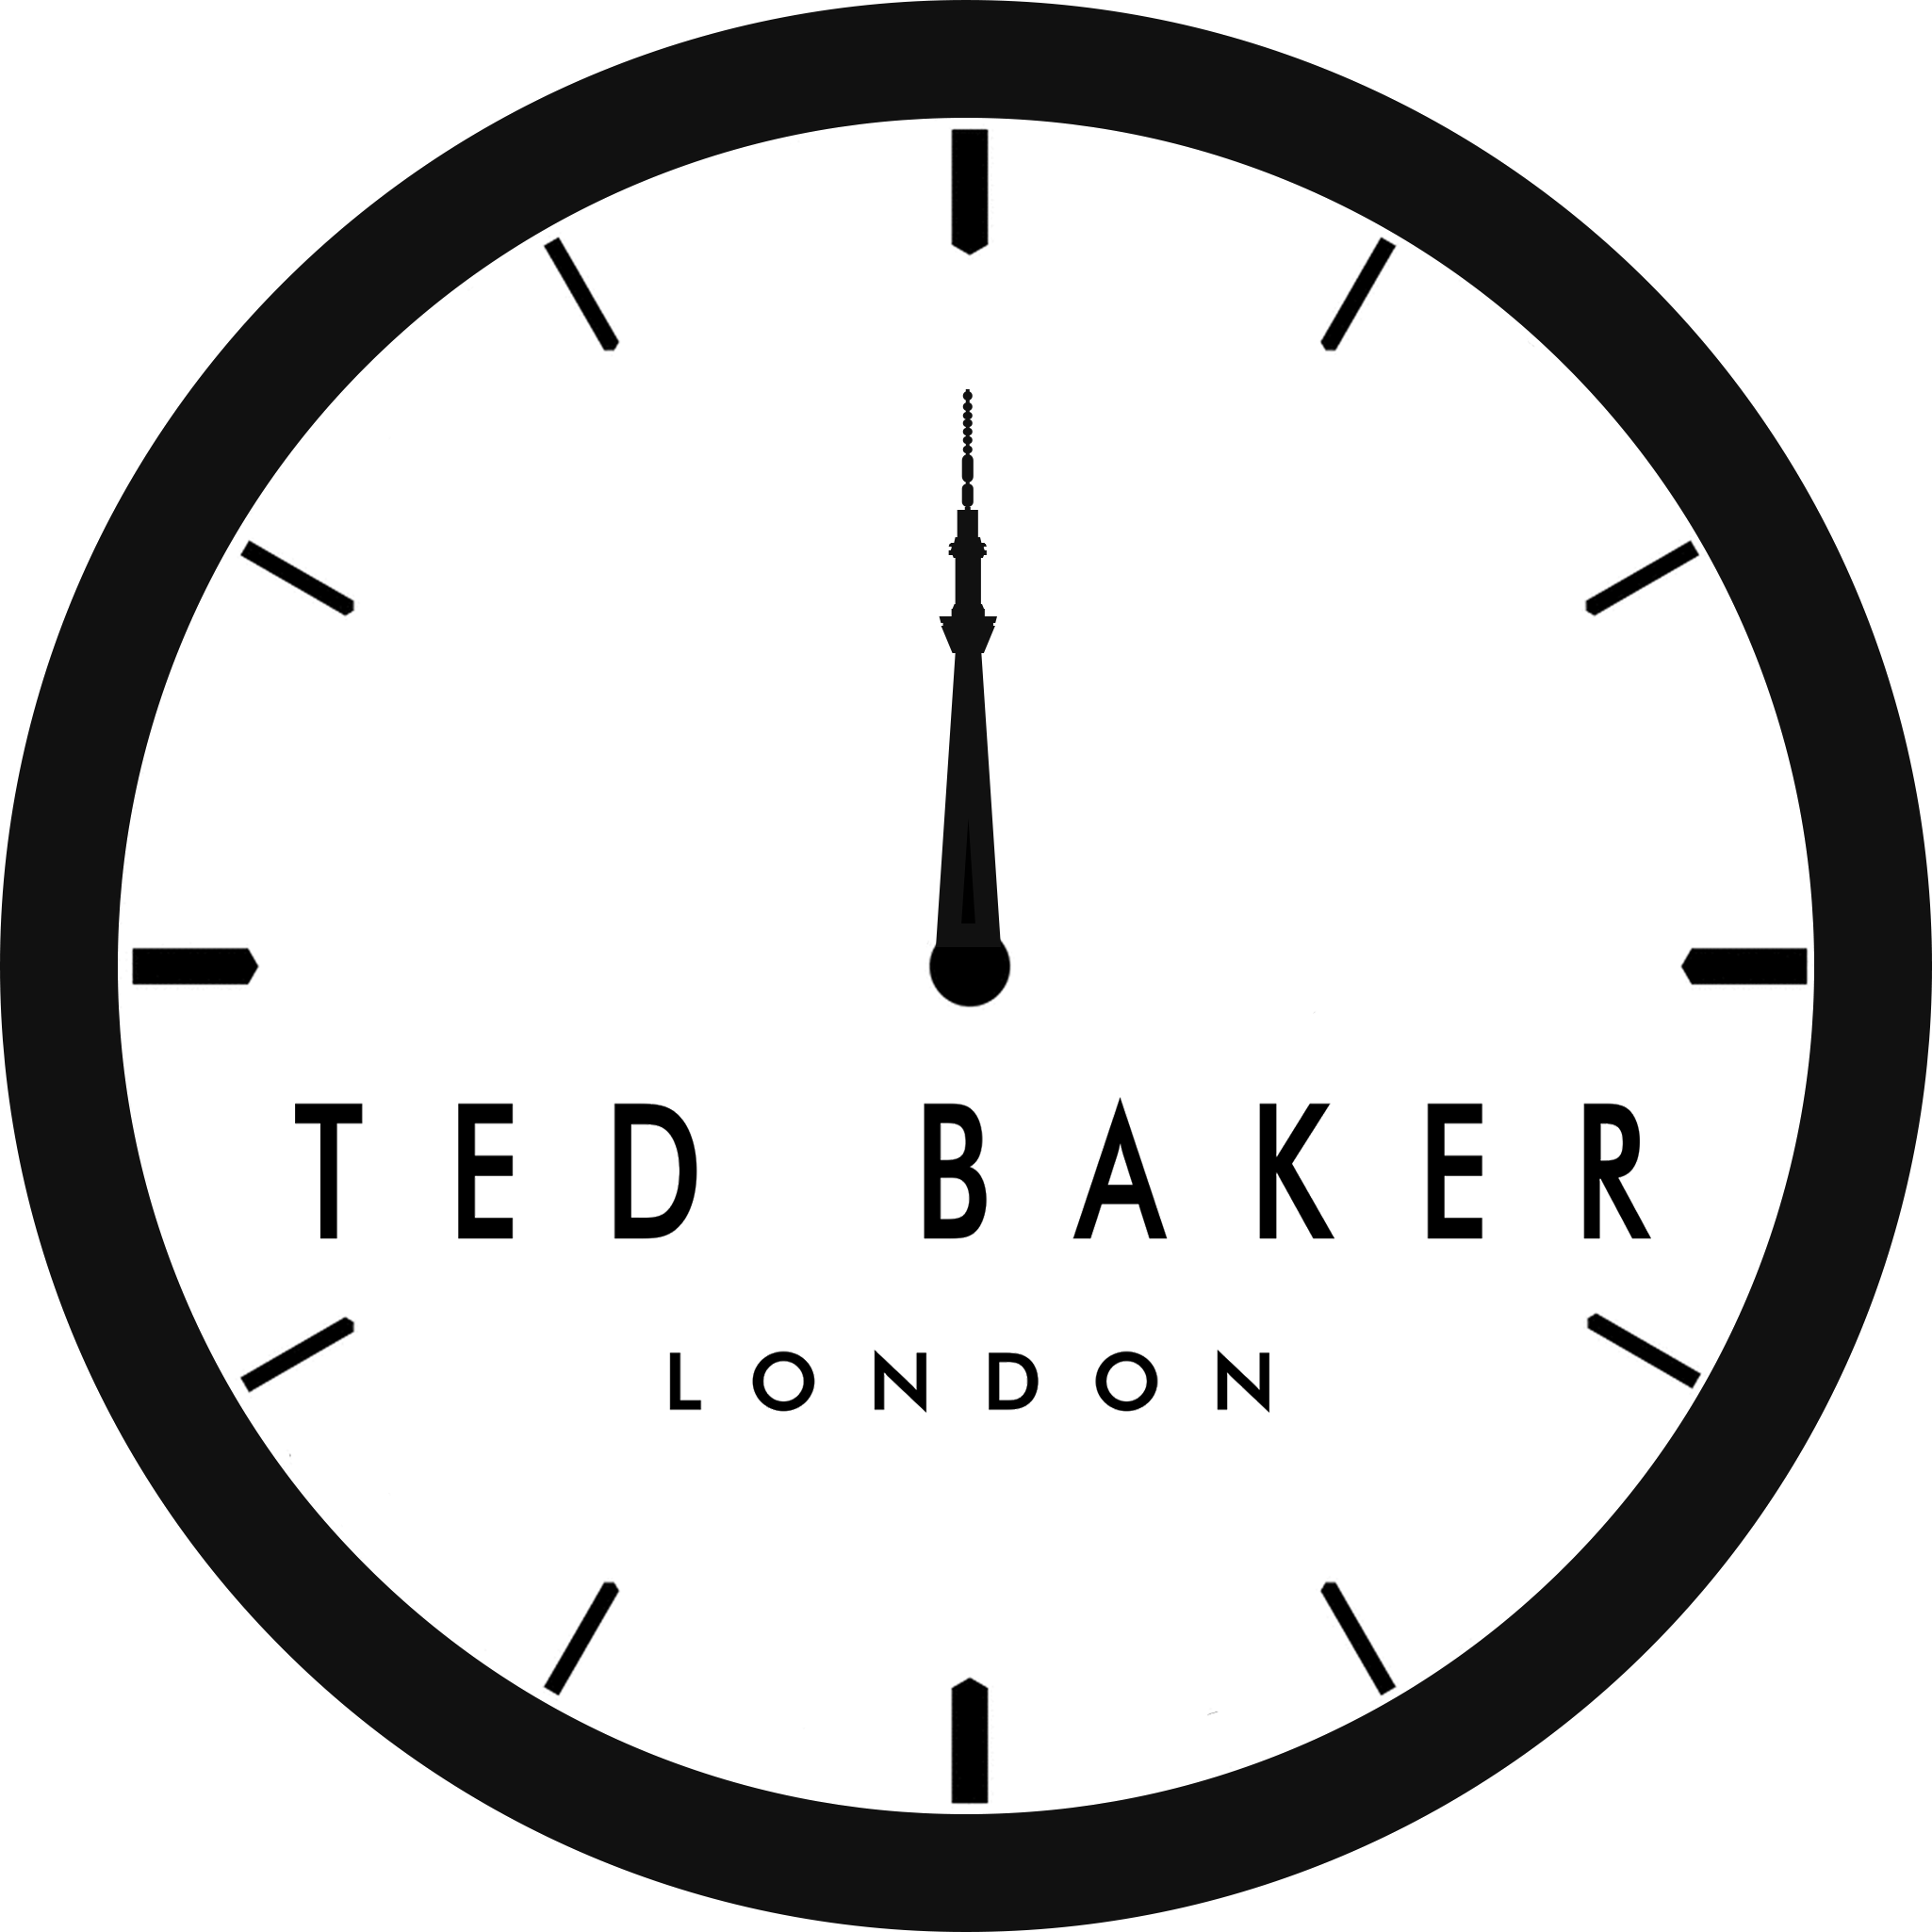 Introducing Ted Baker to Japan